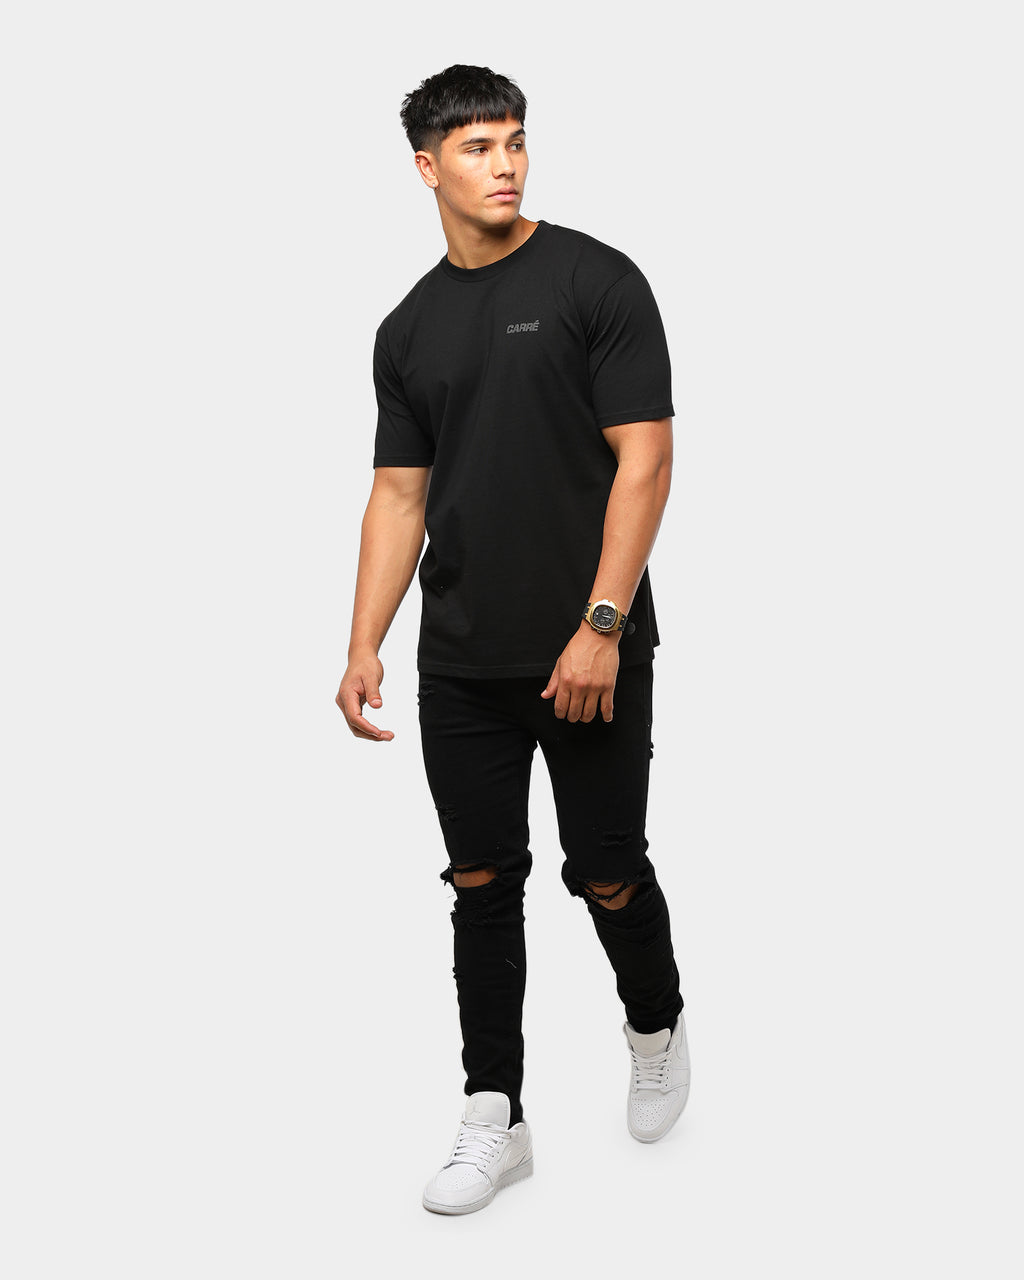 Carré Sport Standard Short Sleeve T-Shirt Black